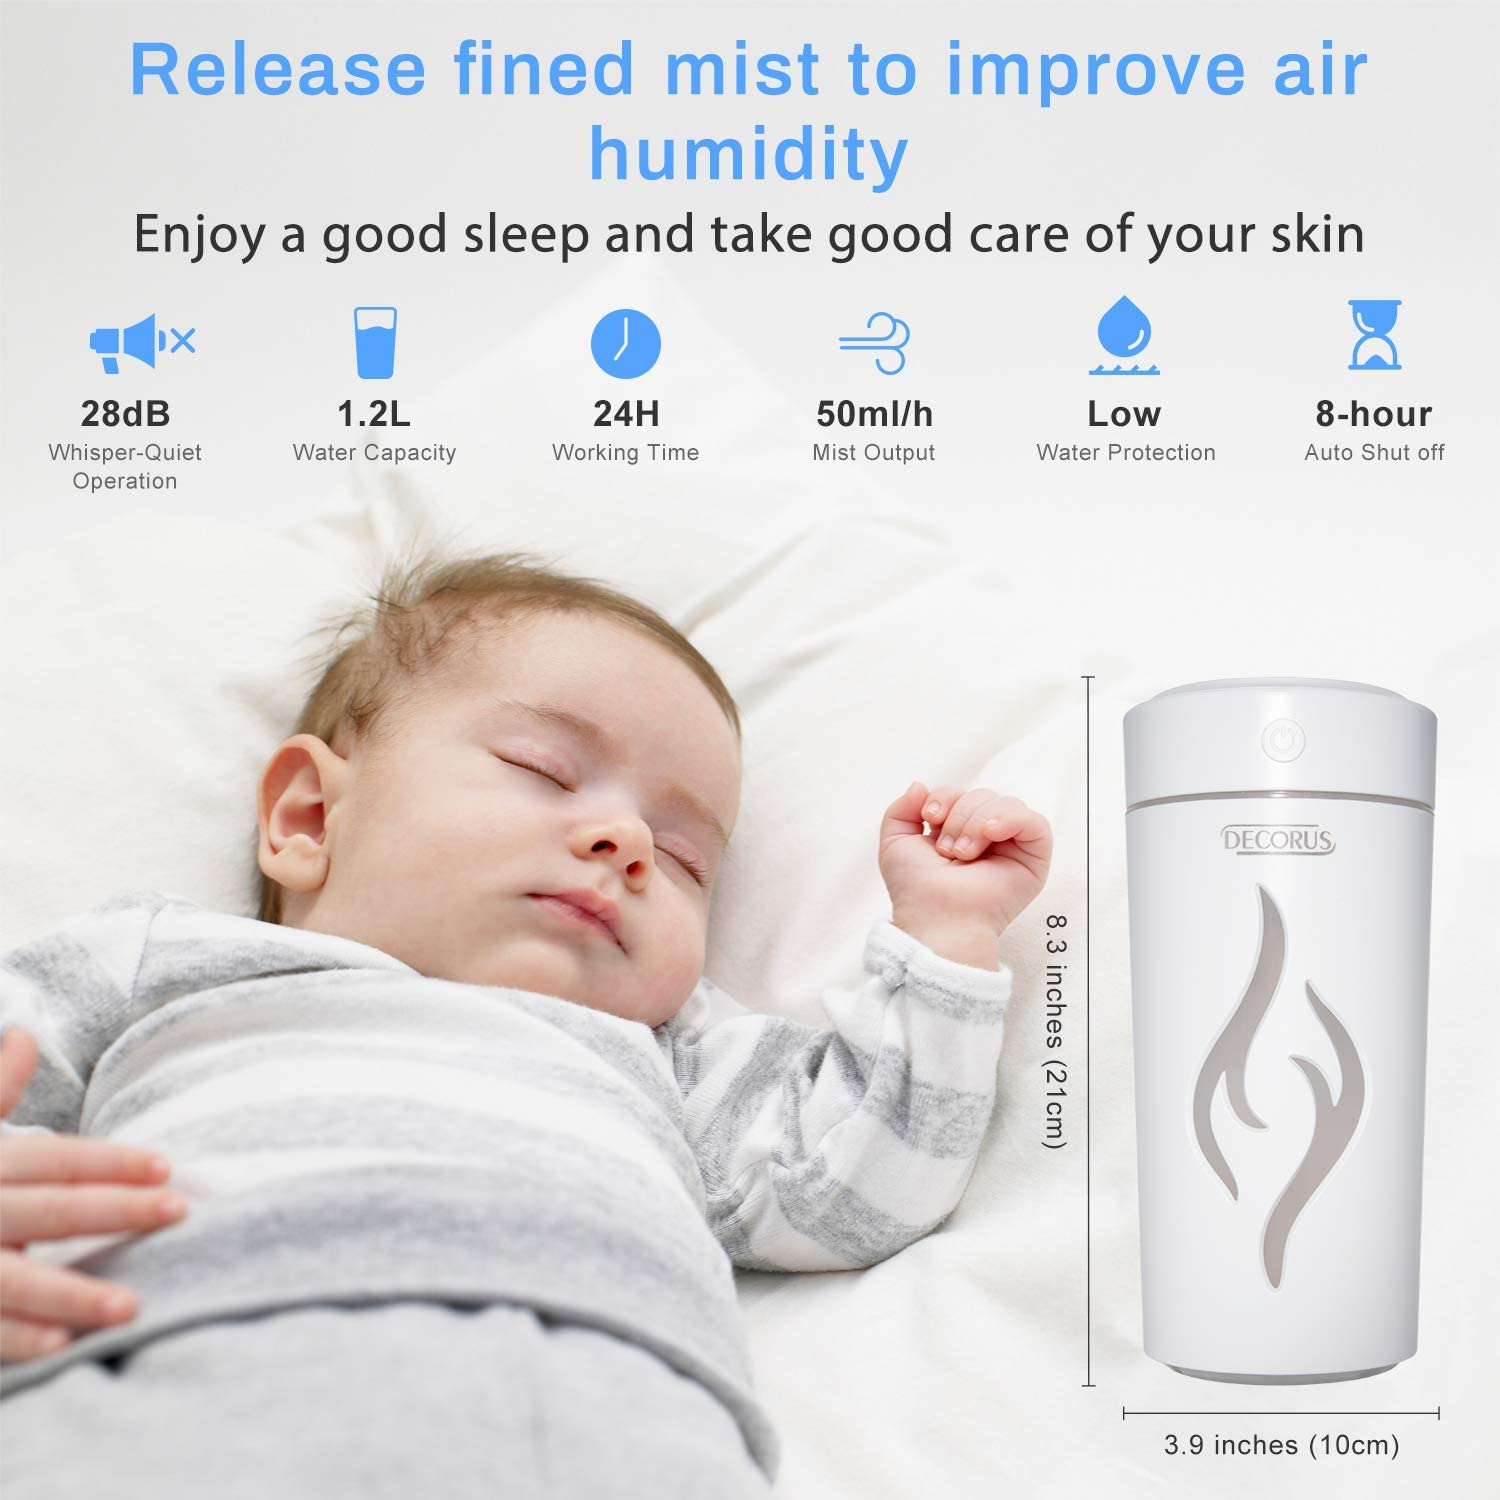 Humidifier for Bedroom Cool Mist Humidifiers Diffuser Top Fill 1.2 L Water Tank Ultra Quiet Air Humidifier Lasts up to 24 Hours with 7 Colors Night Lights Changing Easy to Clean White